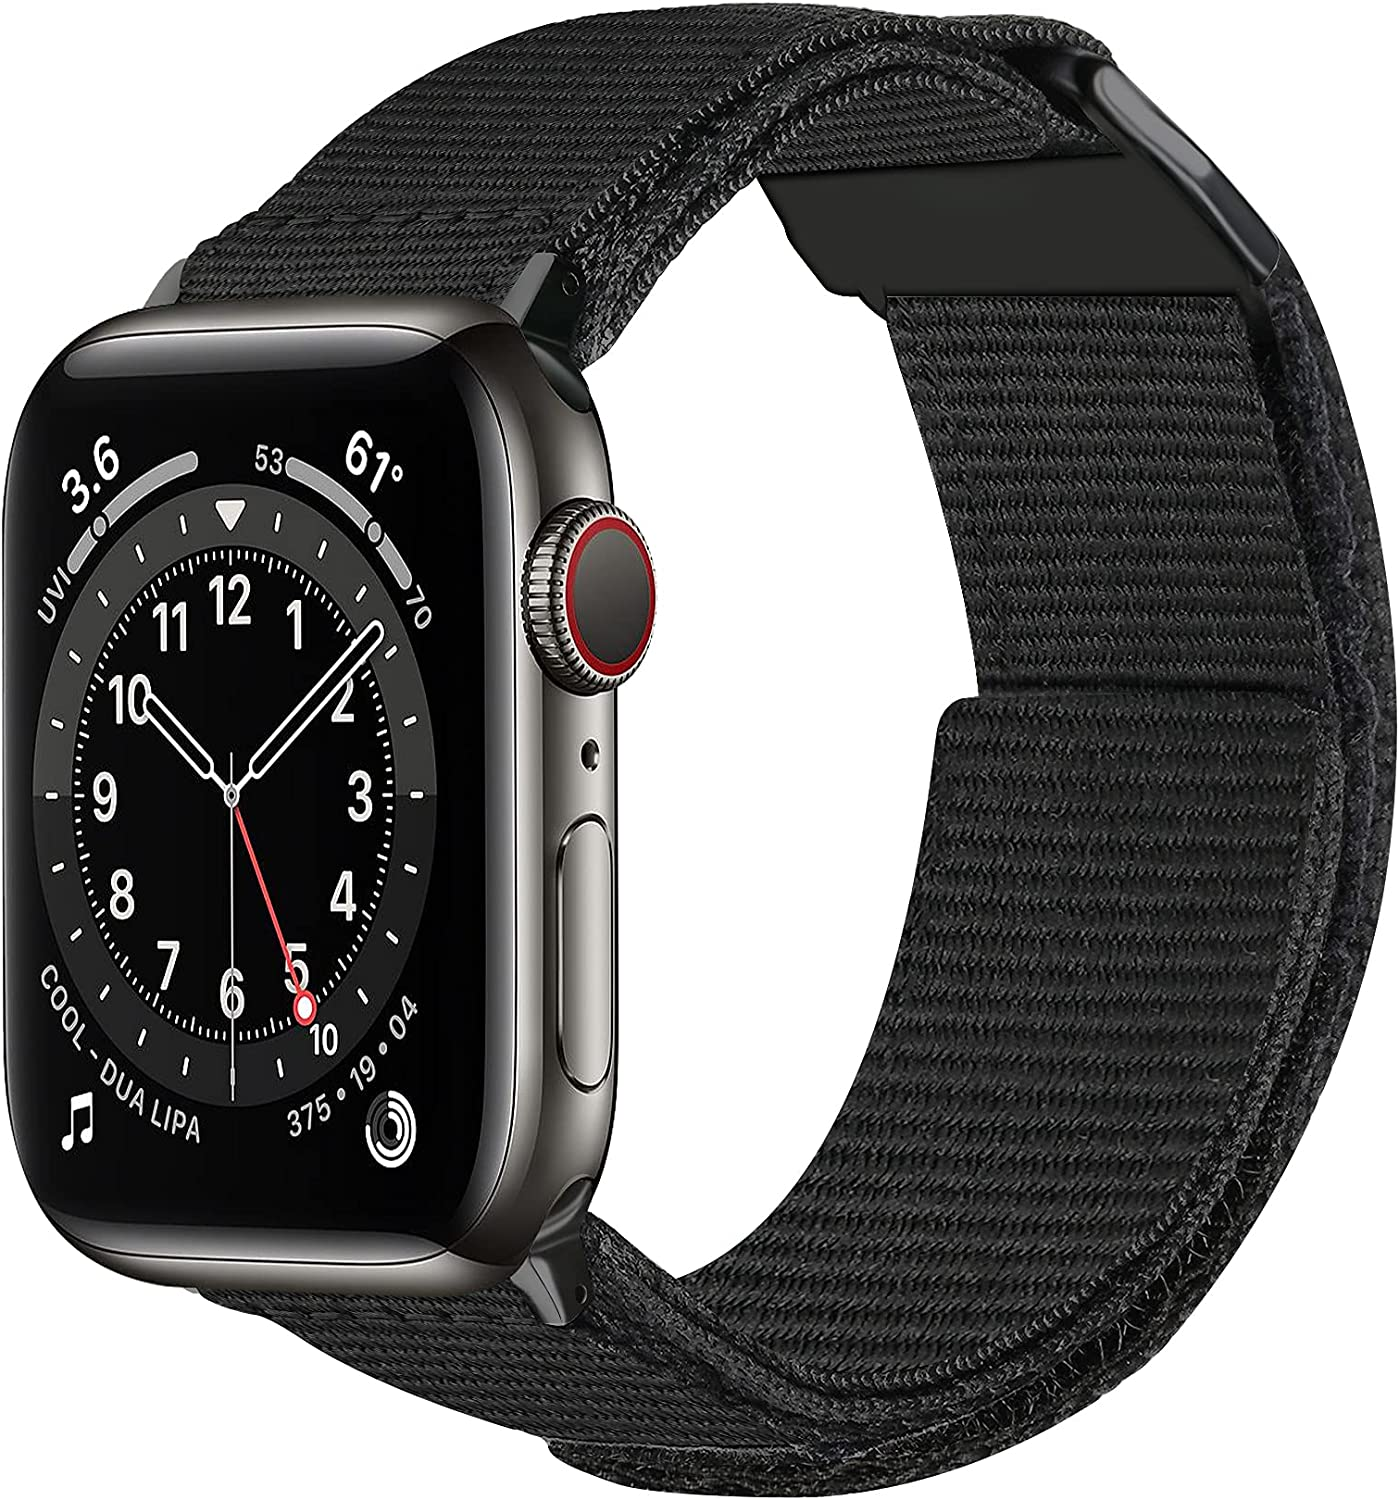 baozai Nylon Band Compatible with Apple Watch 45mm 44mm 42mm, Upgraded Soft Breathable Woven Sport Loop Wristband for iWatch Series 7/6/5/4/3/2/1/SE